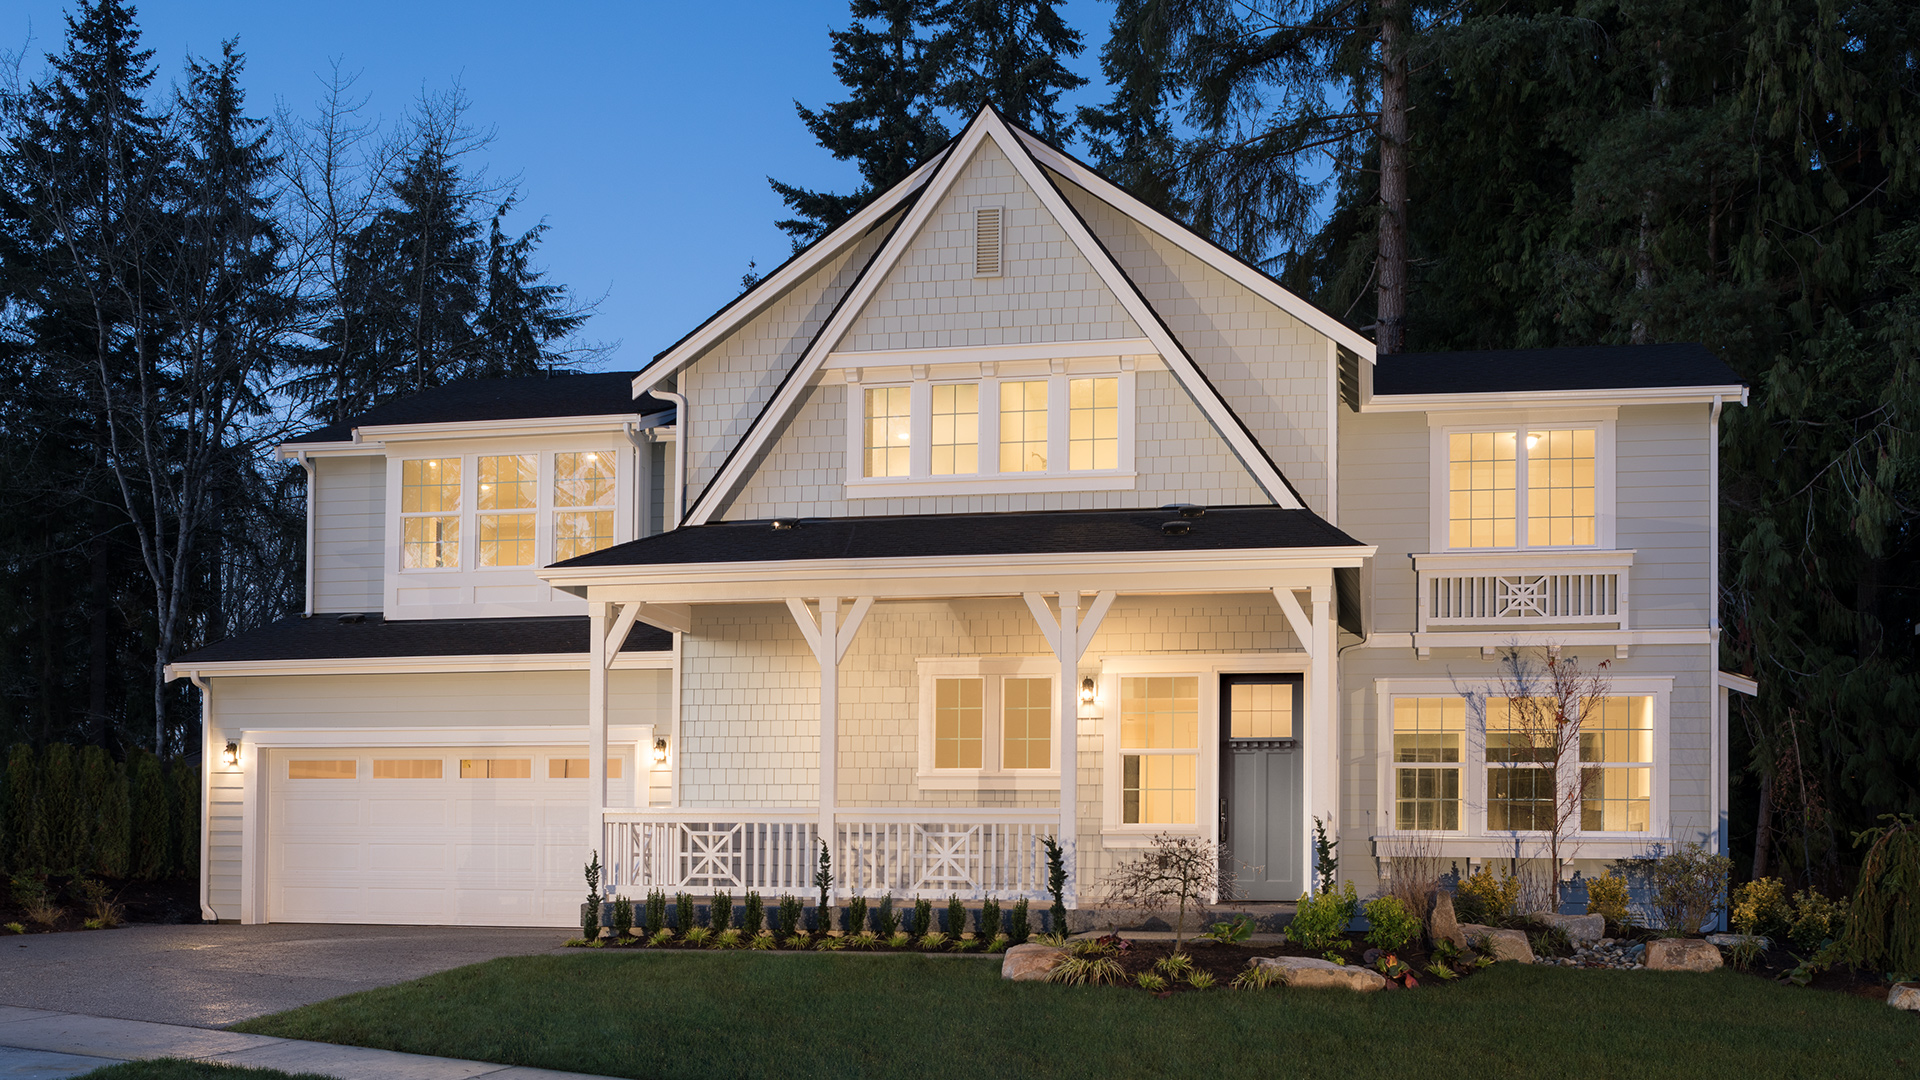 New Luxury Homes For In Bothell Wa Meridian Grove